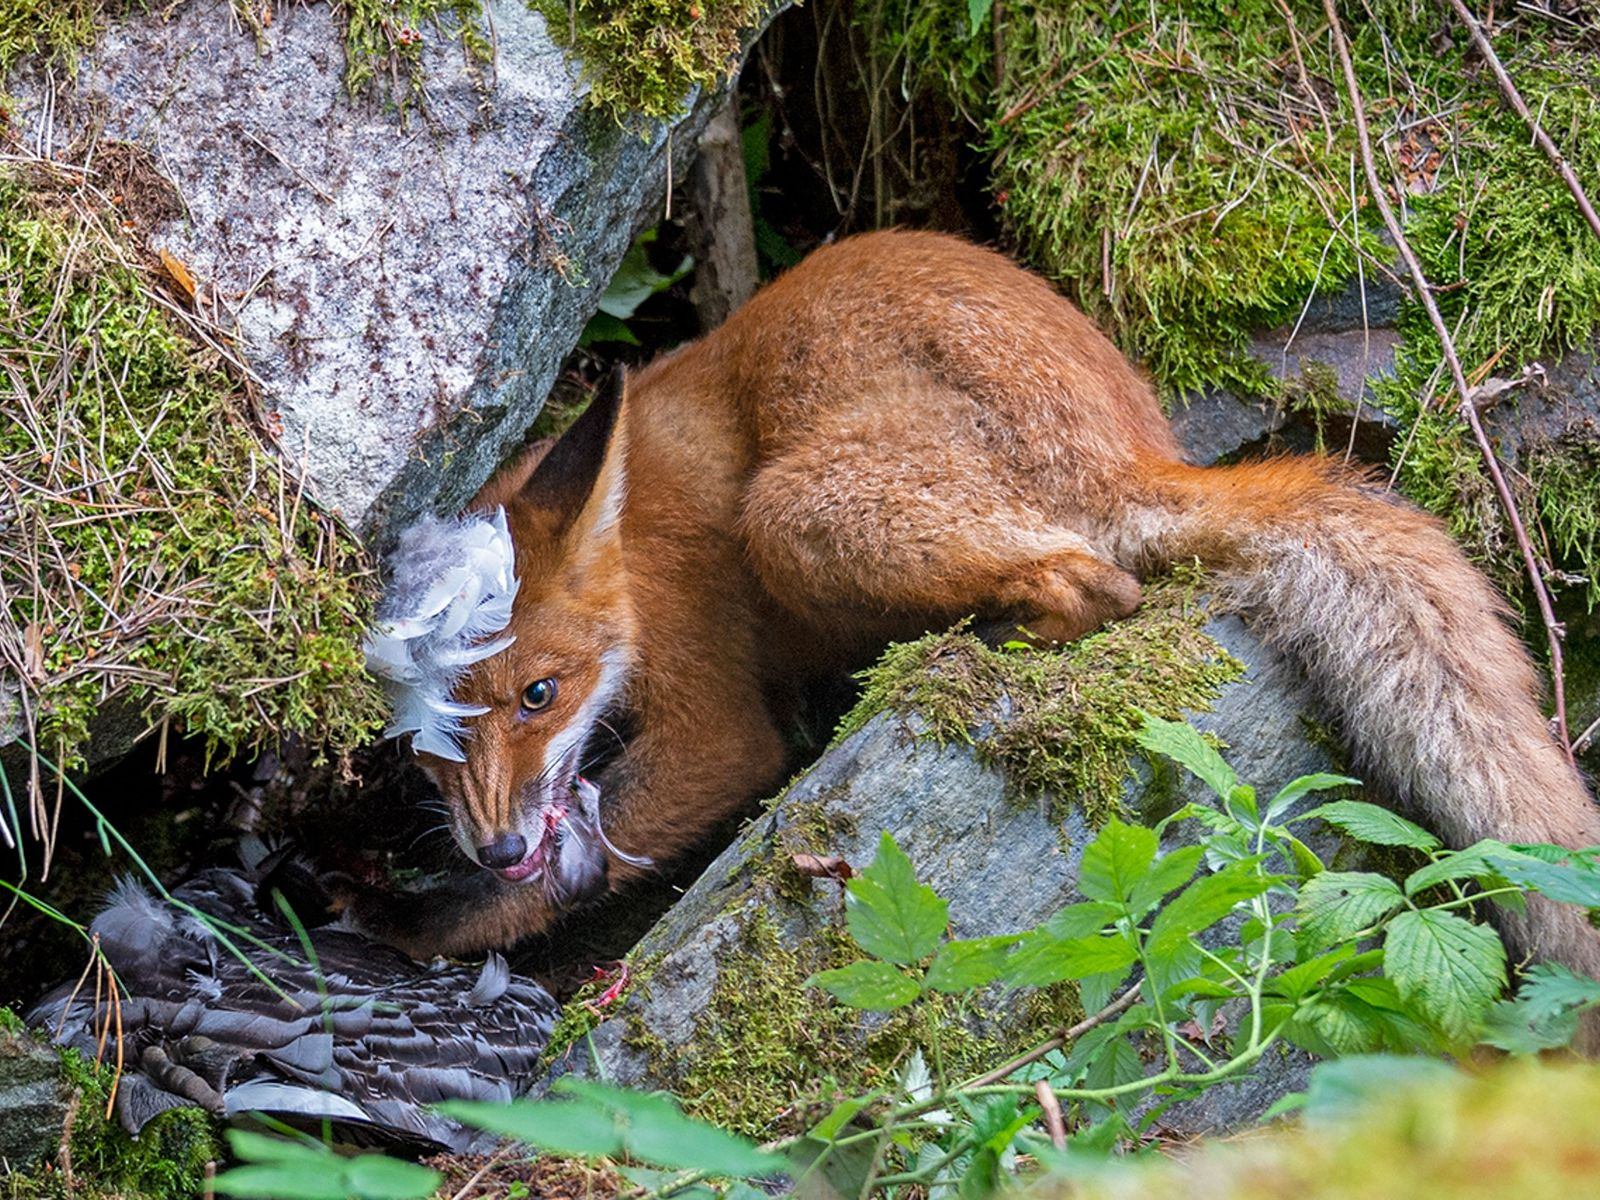 Thirteen-year-old Liina Heikkinen of Finland won Young Wildlife Photographer of the Year, the competition's other top ...